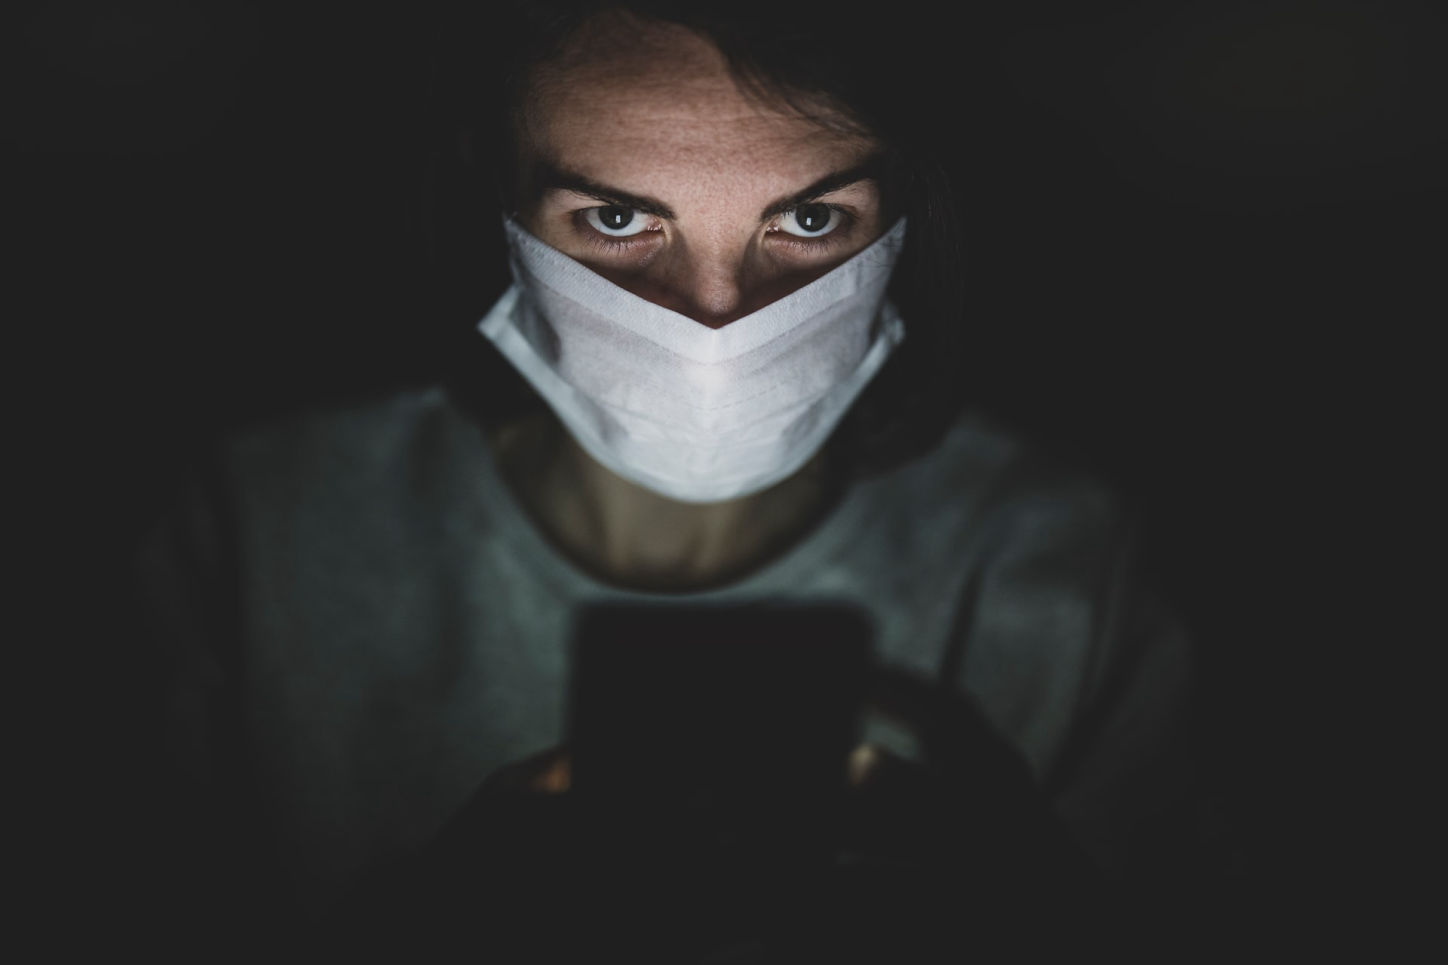 person wearing mask in the dark looking at phone